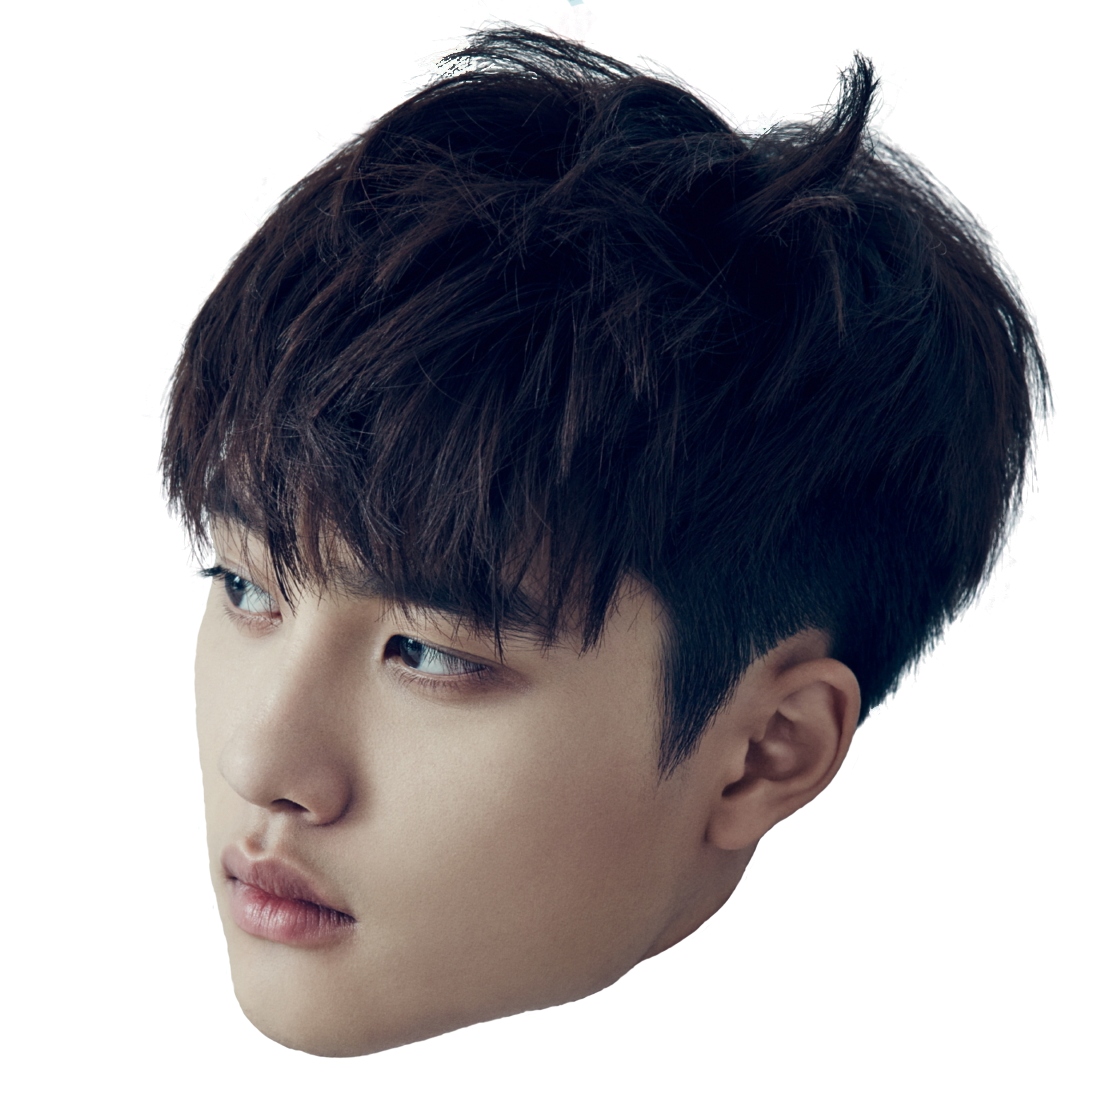 Chanyeol transparent head. Daily reminder yoongi is